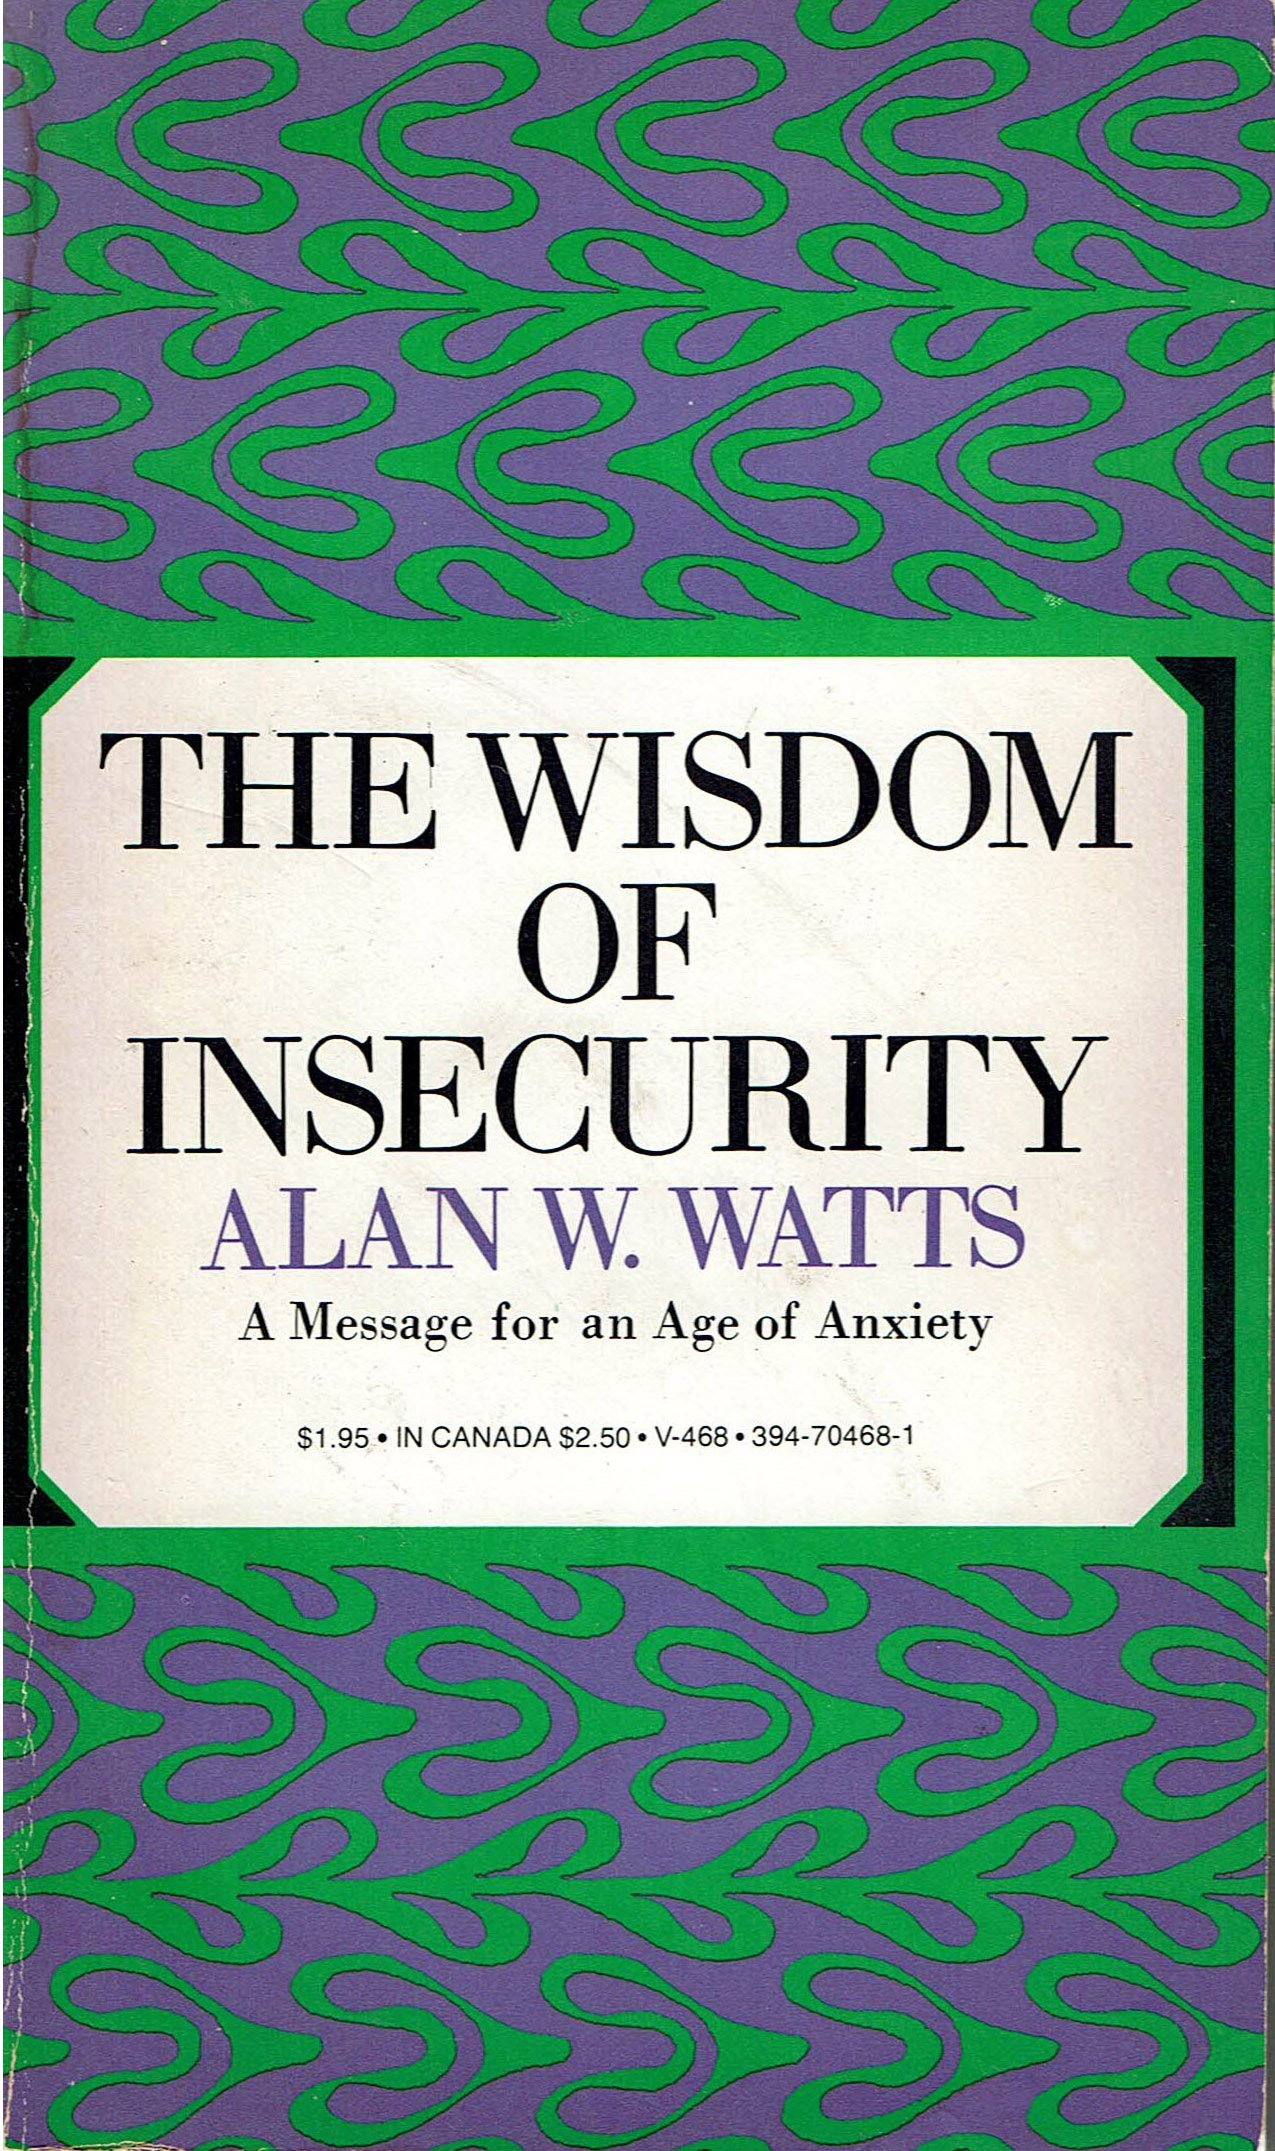 The wisdom of insecurity a message for an age of anxiety alan w the wisdom of insecurity a message for an age of anxiety alan w watts amazon books fandeluxe Images